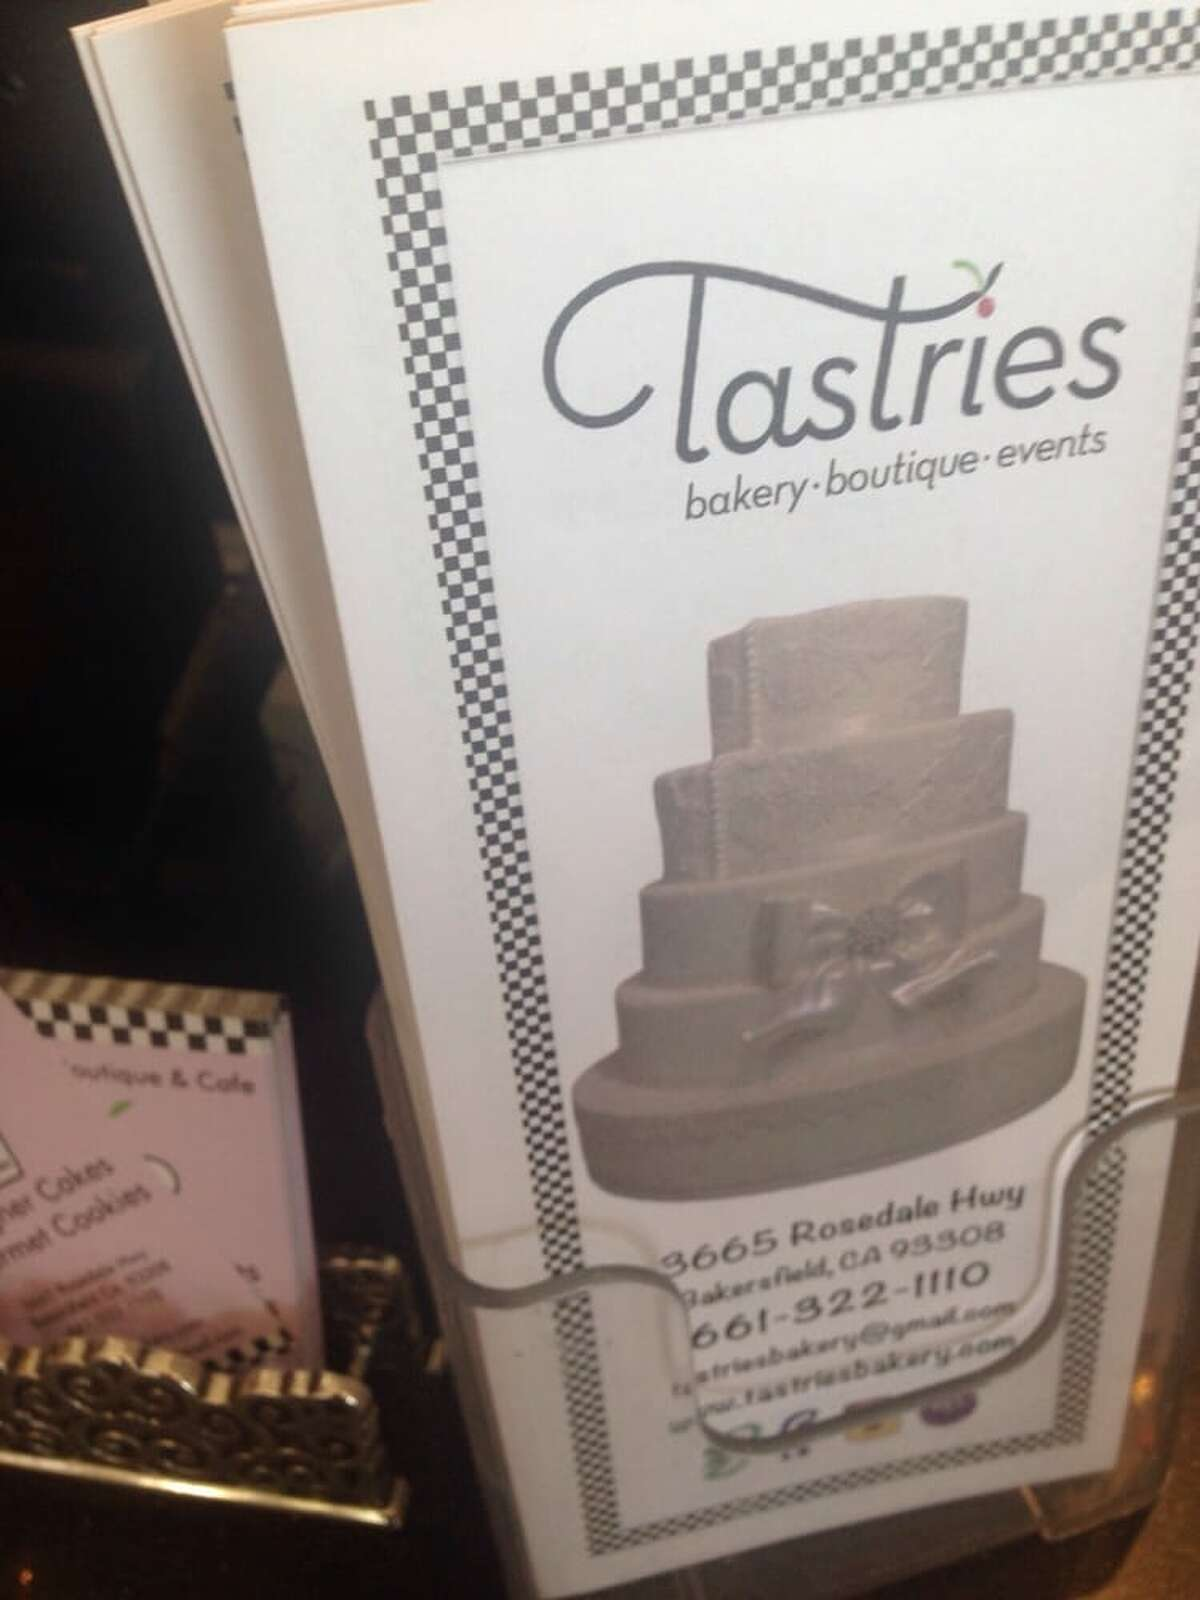 Tastries Bakery, in Bakersfield, Calf., is under fire after its owner reportedly refused to make wedding cakes for same-sex couples.